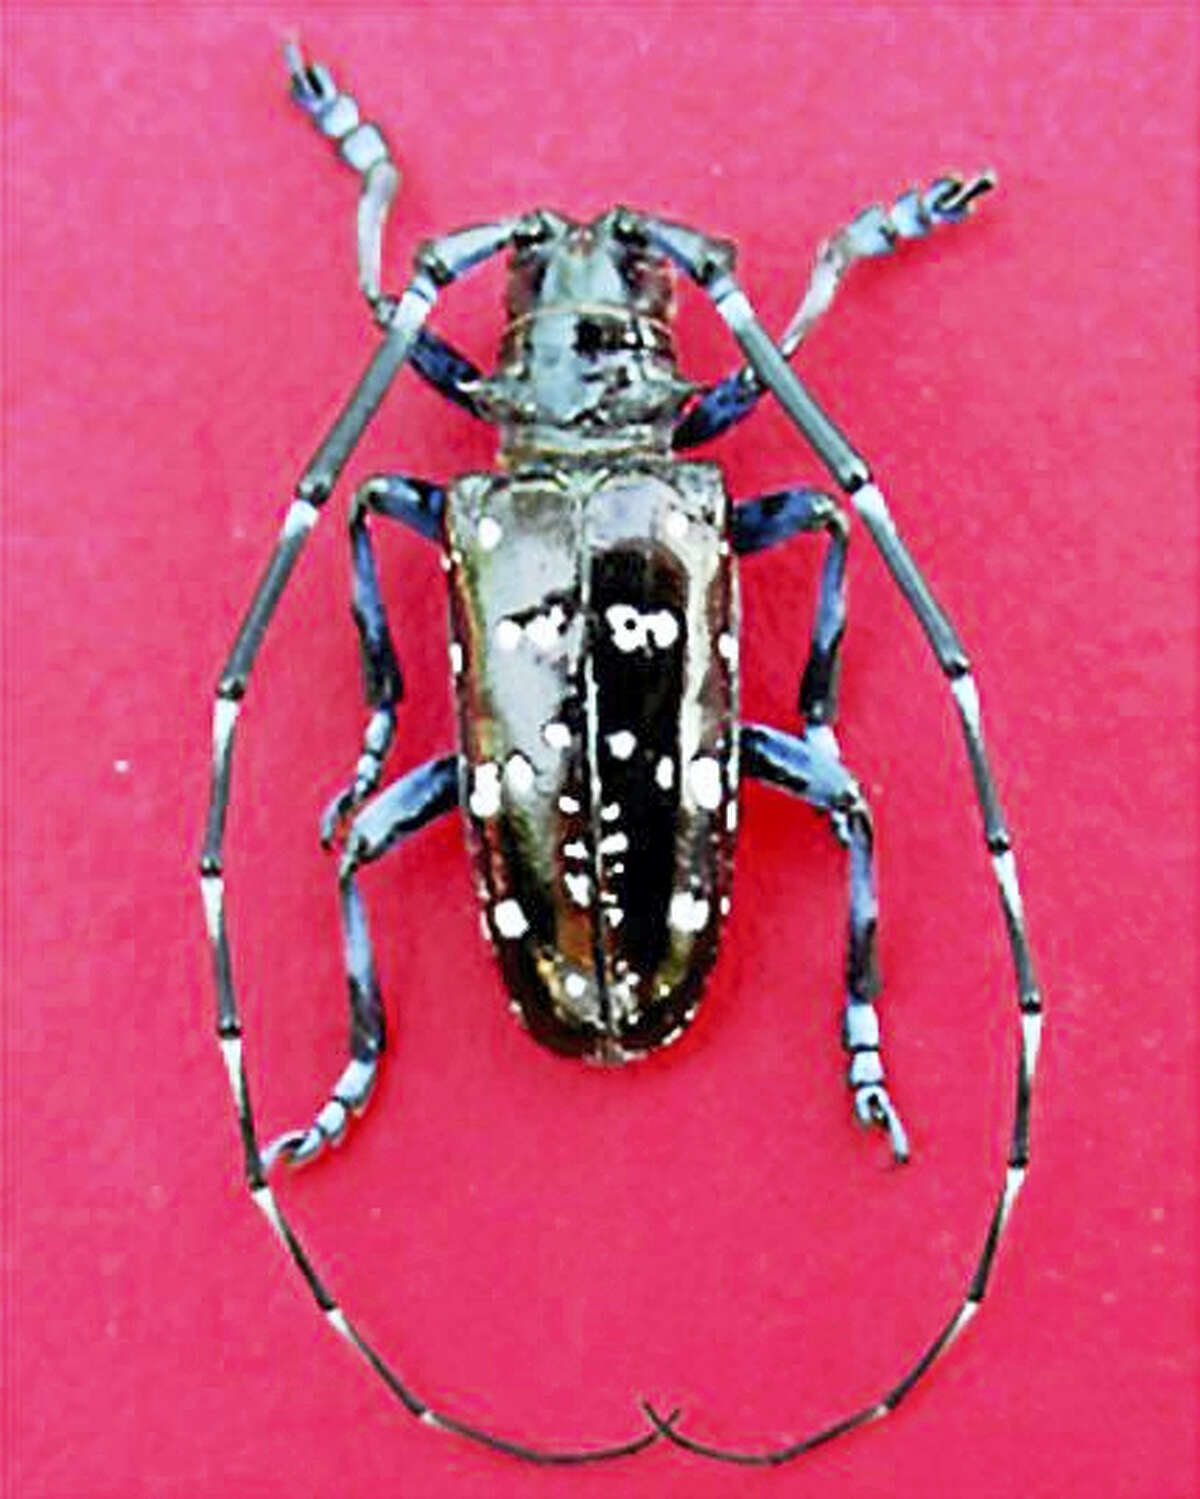 The Asian longhorned beetle is dangerous to Connecticut hardwood trees. Campers are reminded not to bring firewood from other states to be burned in Connecticut.